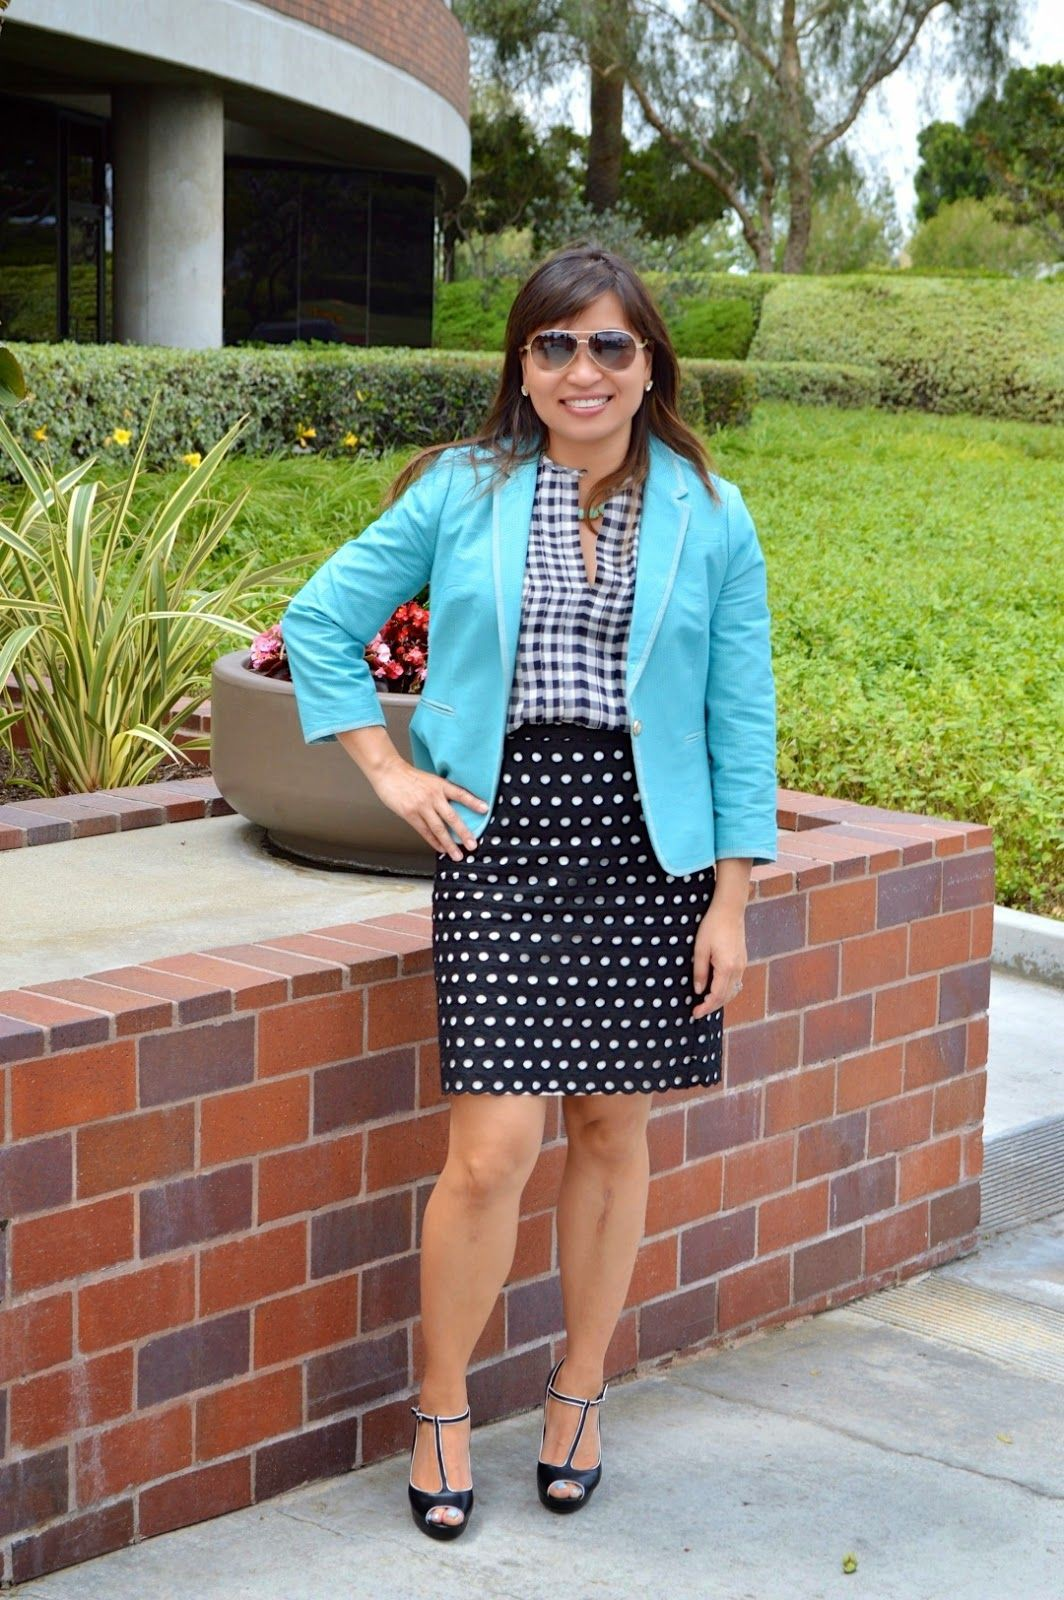 Turquoise and blue outfit ideas with miniskirt, polka dot, tartan